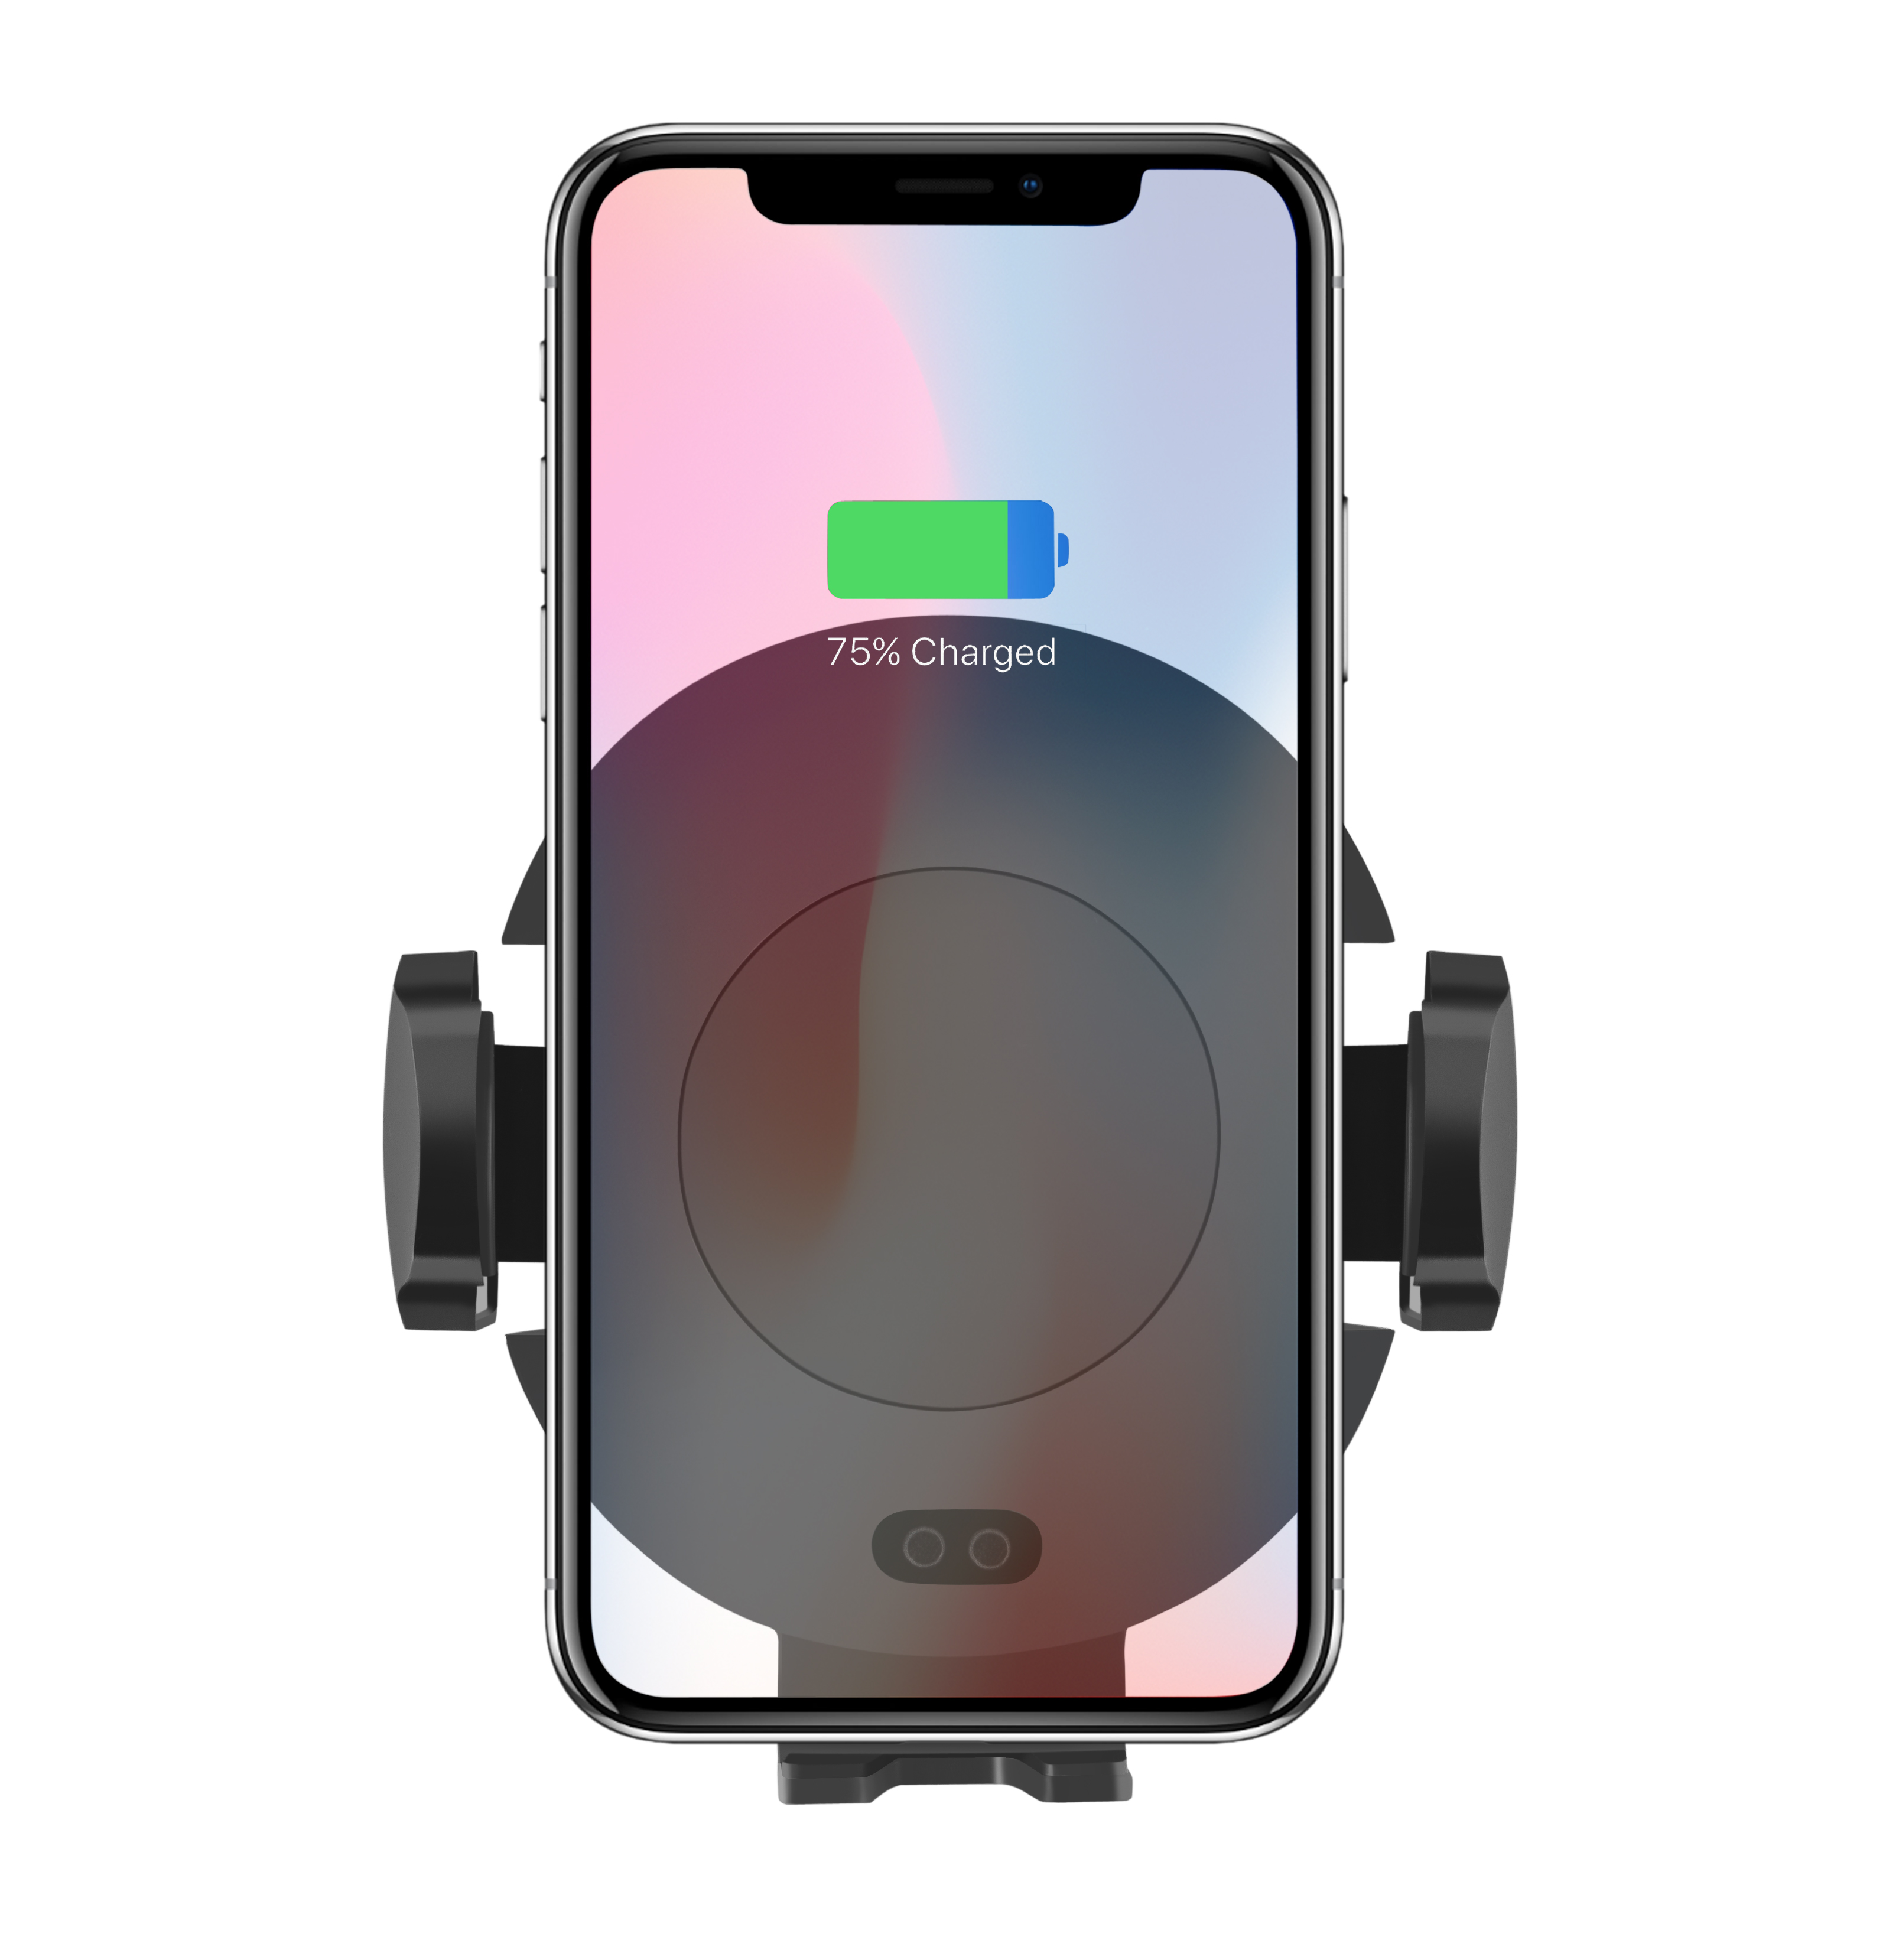 Car Mount Fast QI Wireless Charger With Infrared Sensor Car Air Vent Phone Holder for iPhone XS/ 8 Plus/ X Samsung S9 S8 S7 - ANKUX Tech Co., Ltd